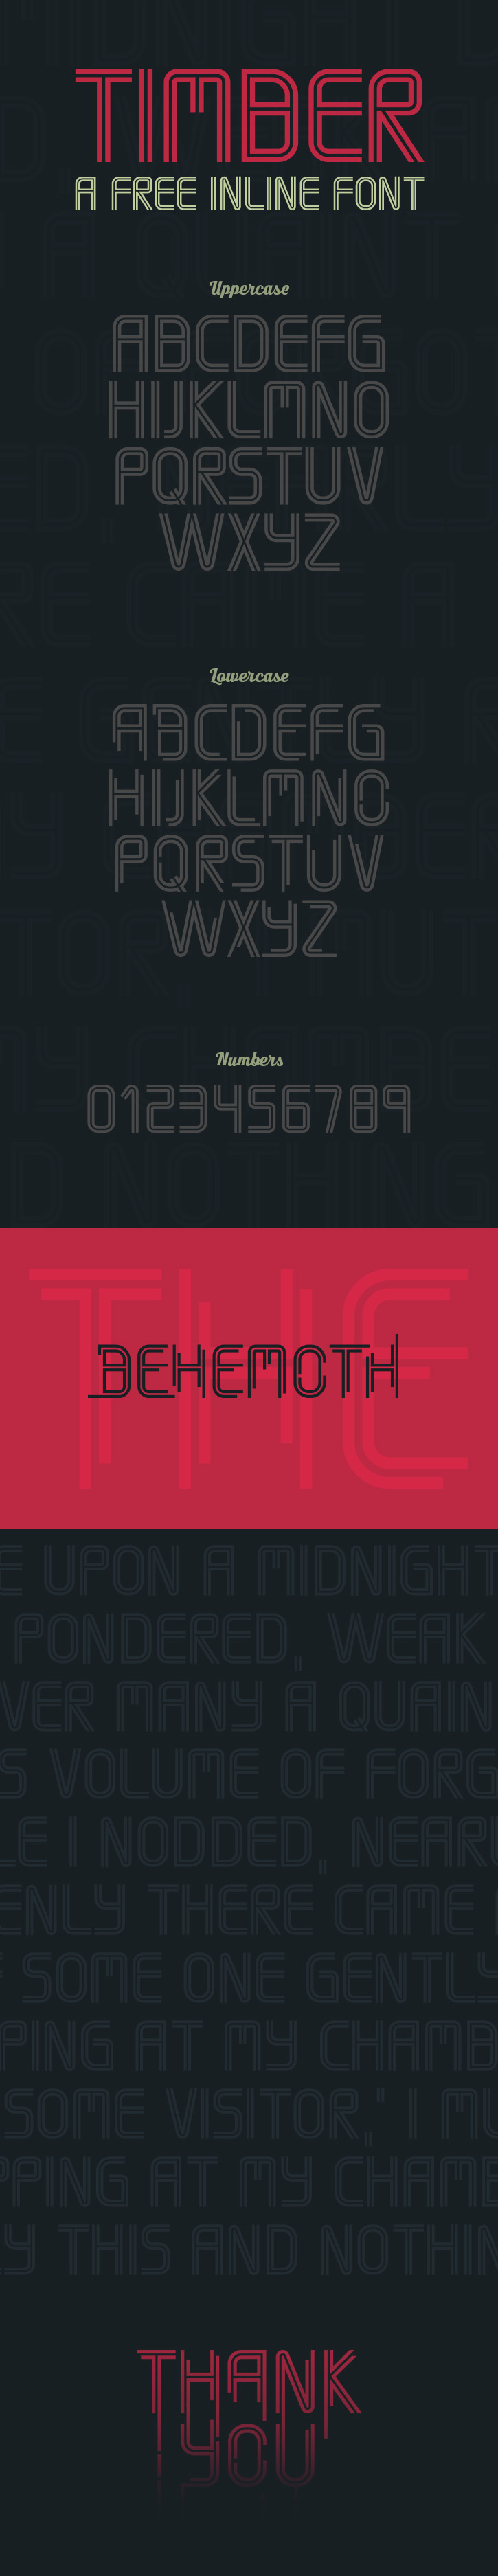 Timber Font Download